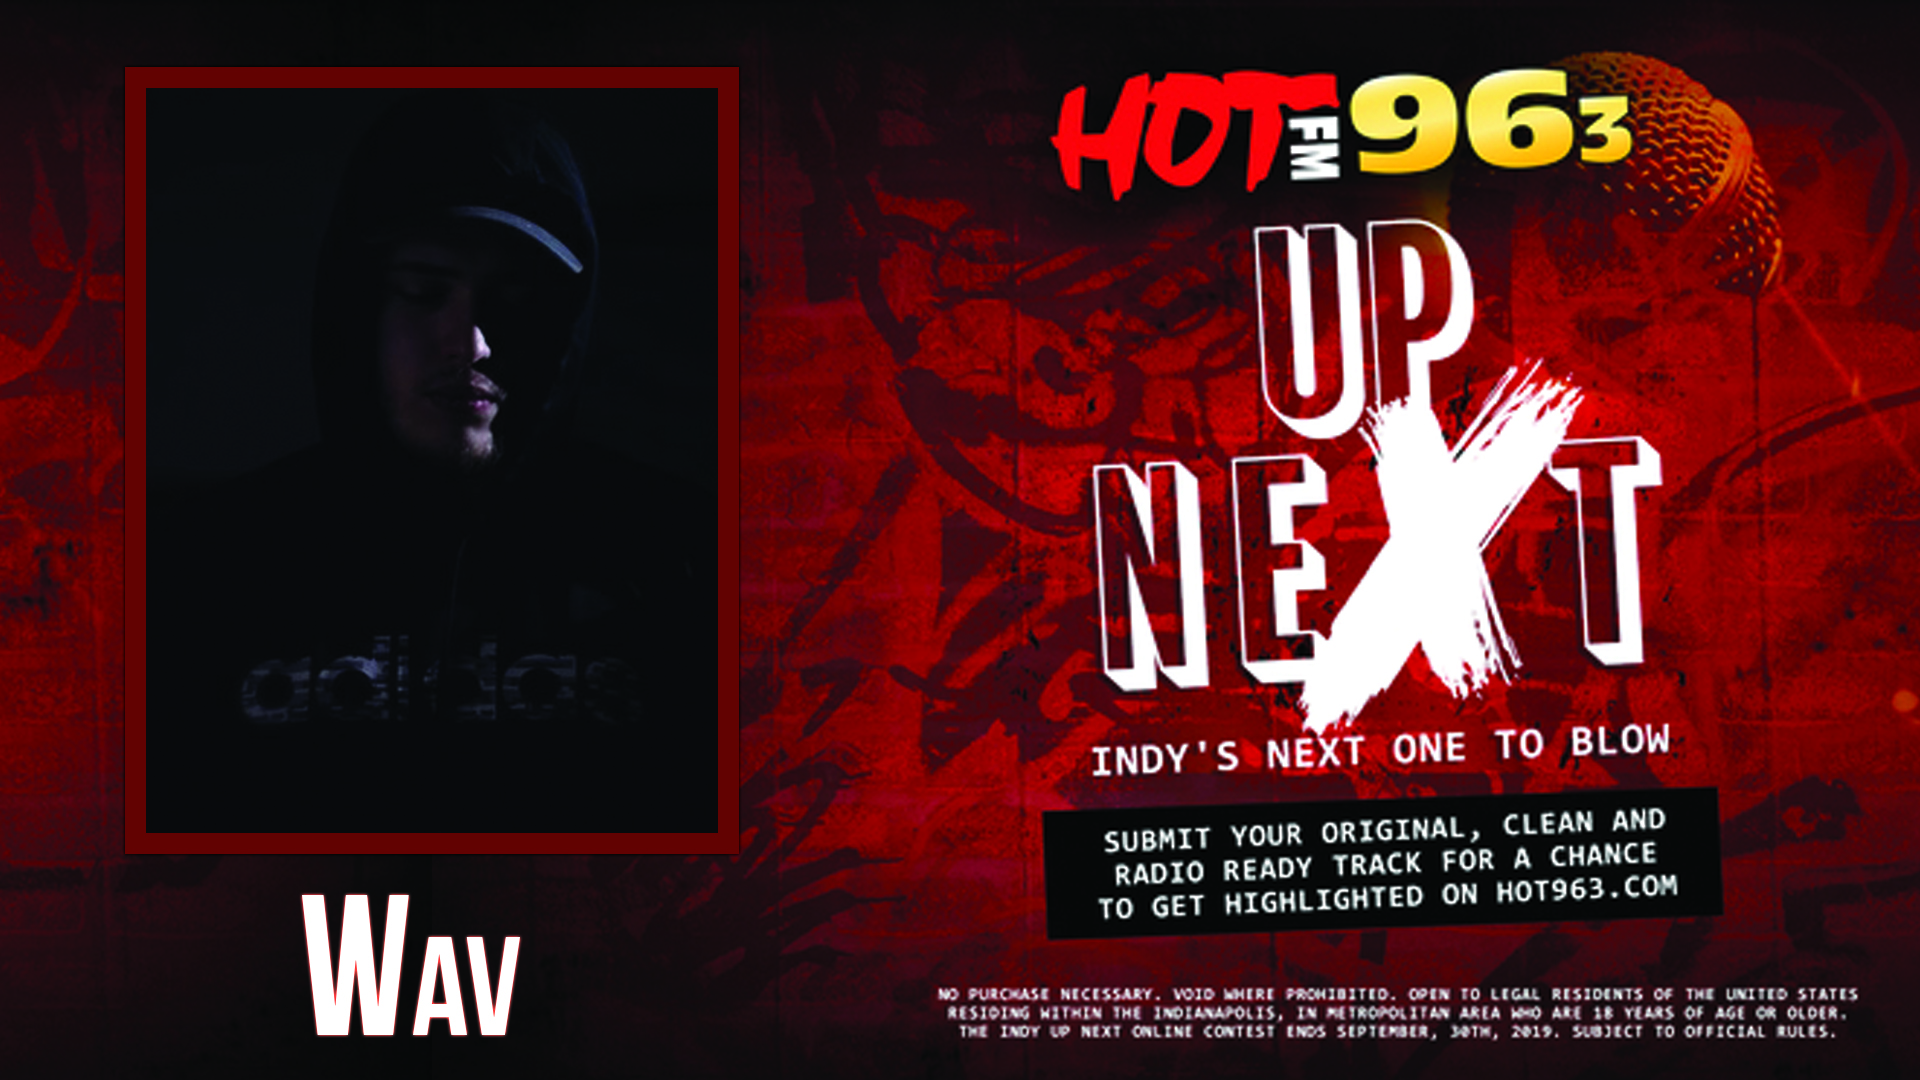 Up Next: Indy's Next One To Blow: Wav